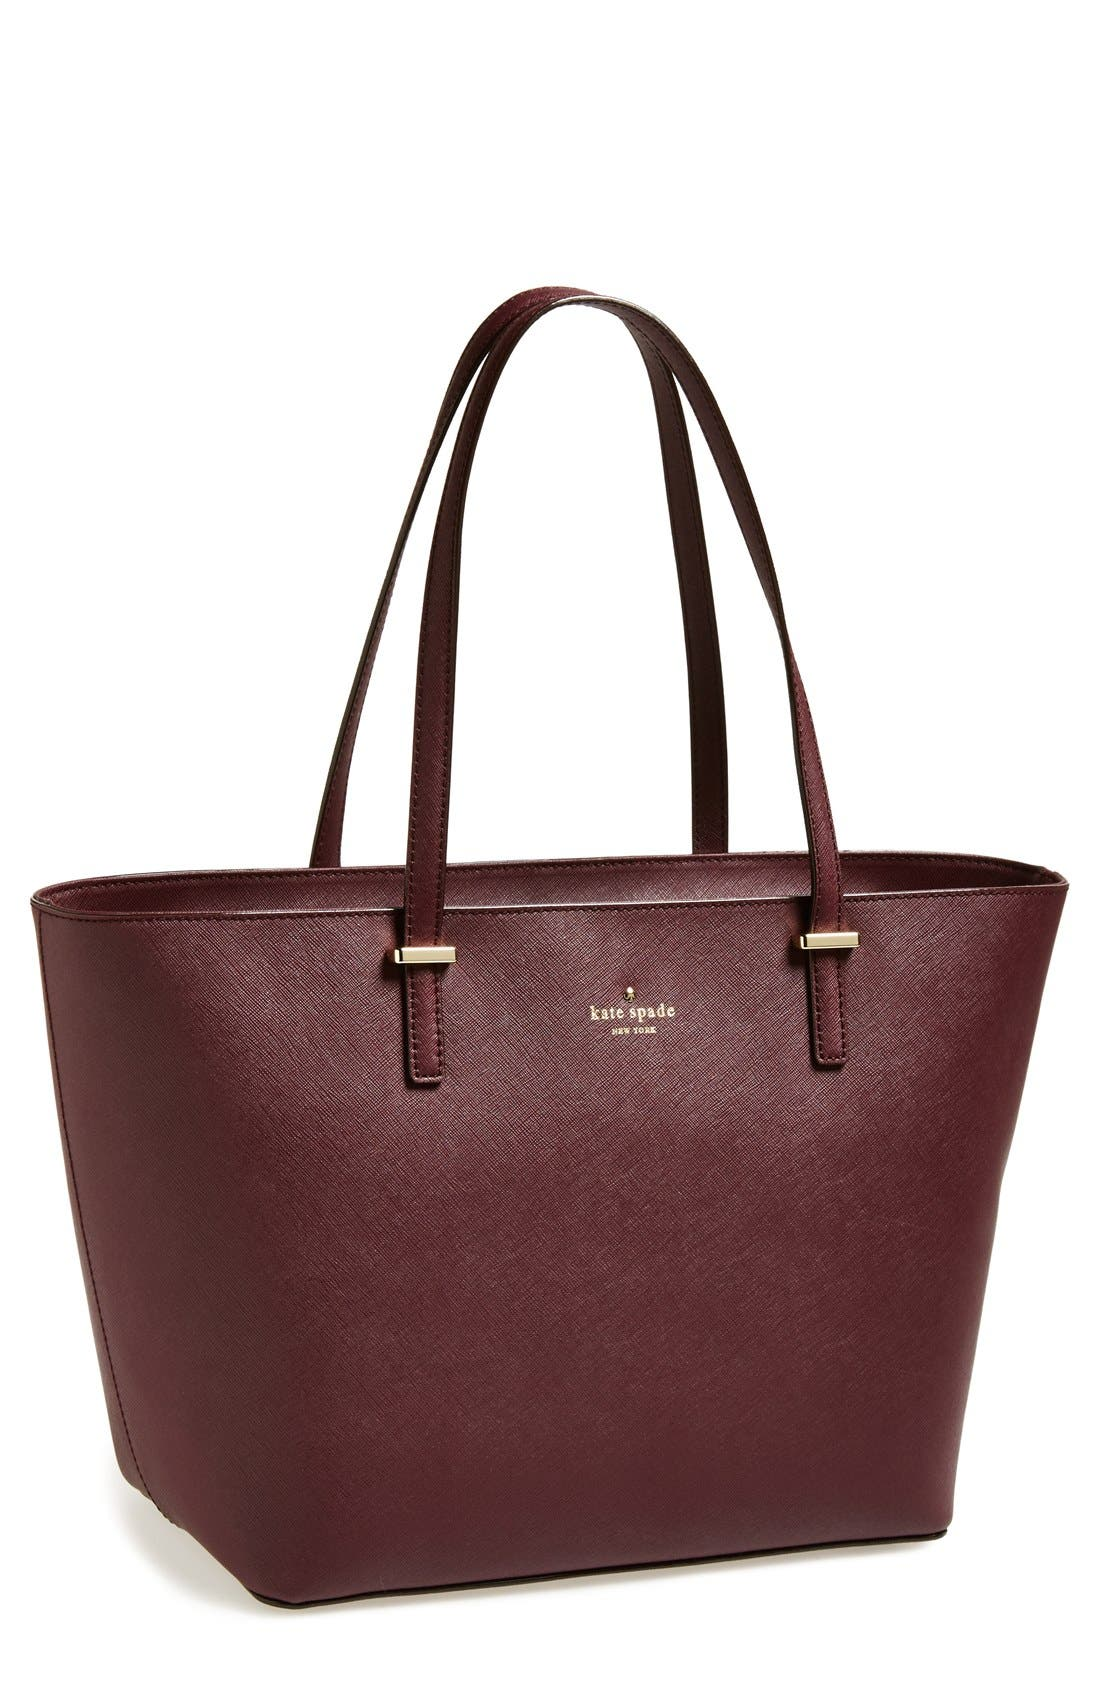 Main Image - kate spade new york 'small cedar street harmony' tote